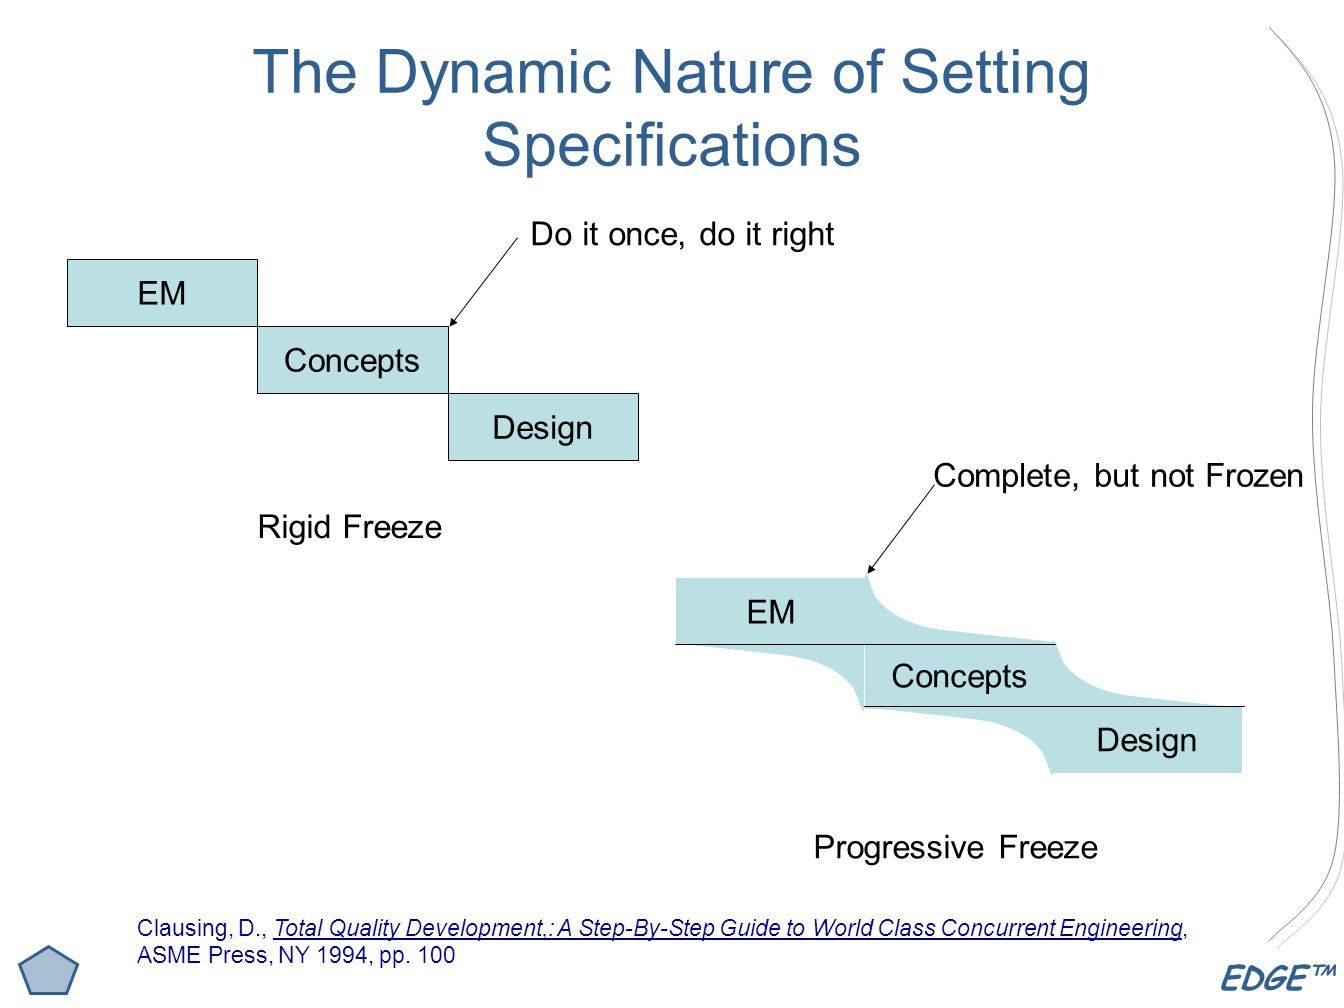 The Dynamic Nature of Setting Specifications